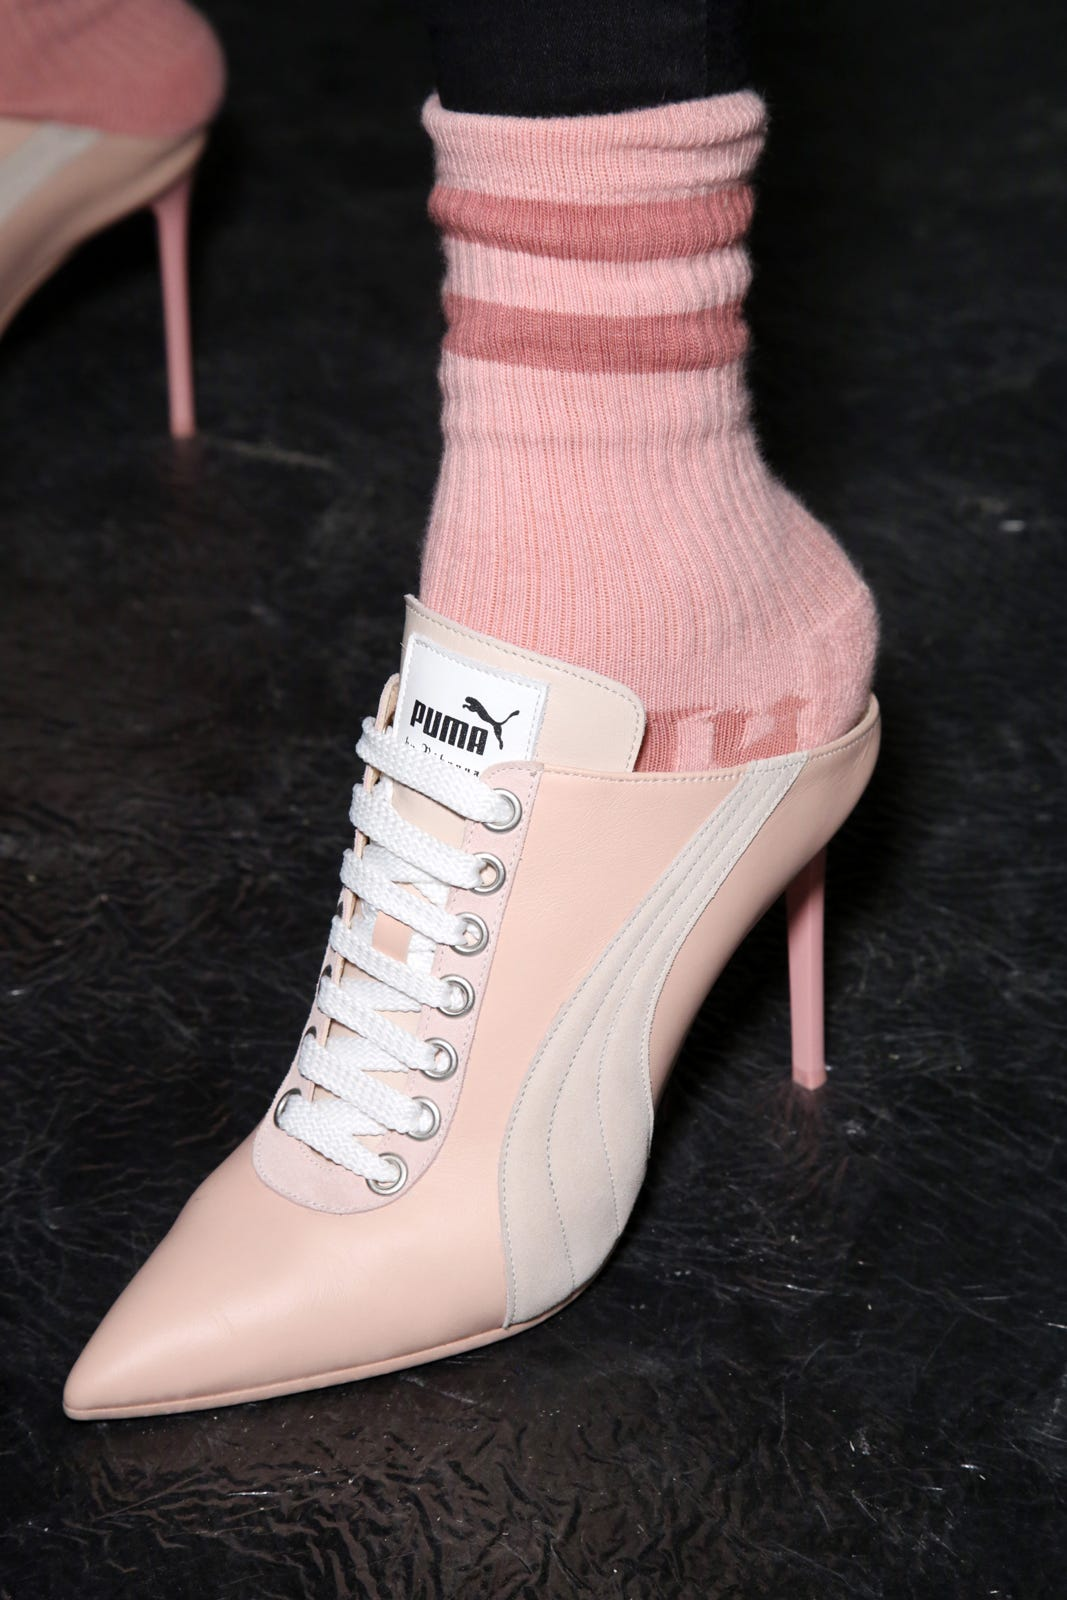 Rihanna Fenty Spring 2017 Puma Shoes Paris Fashion Week 4eca79489